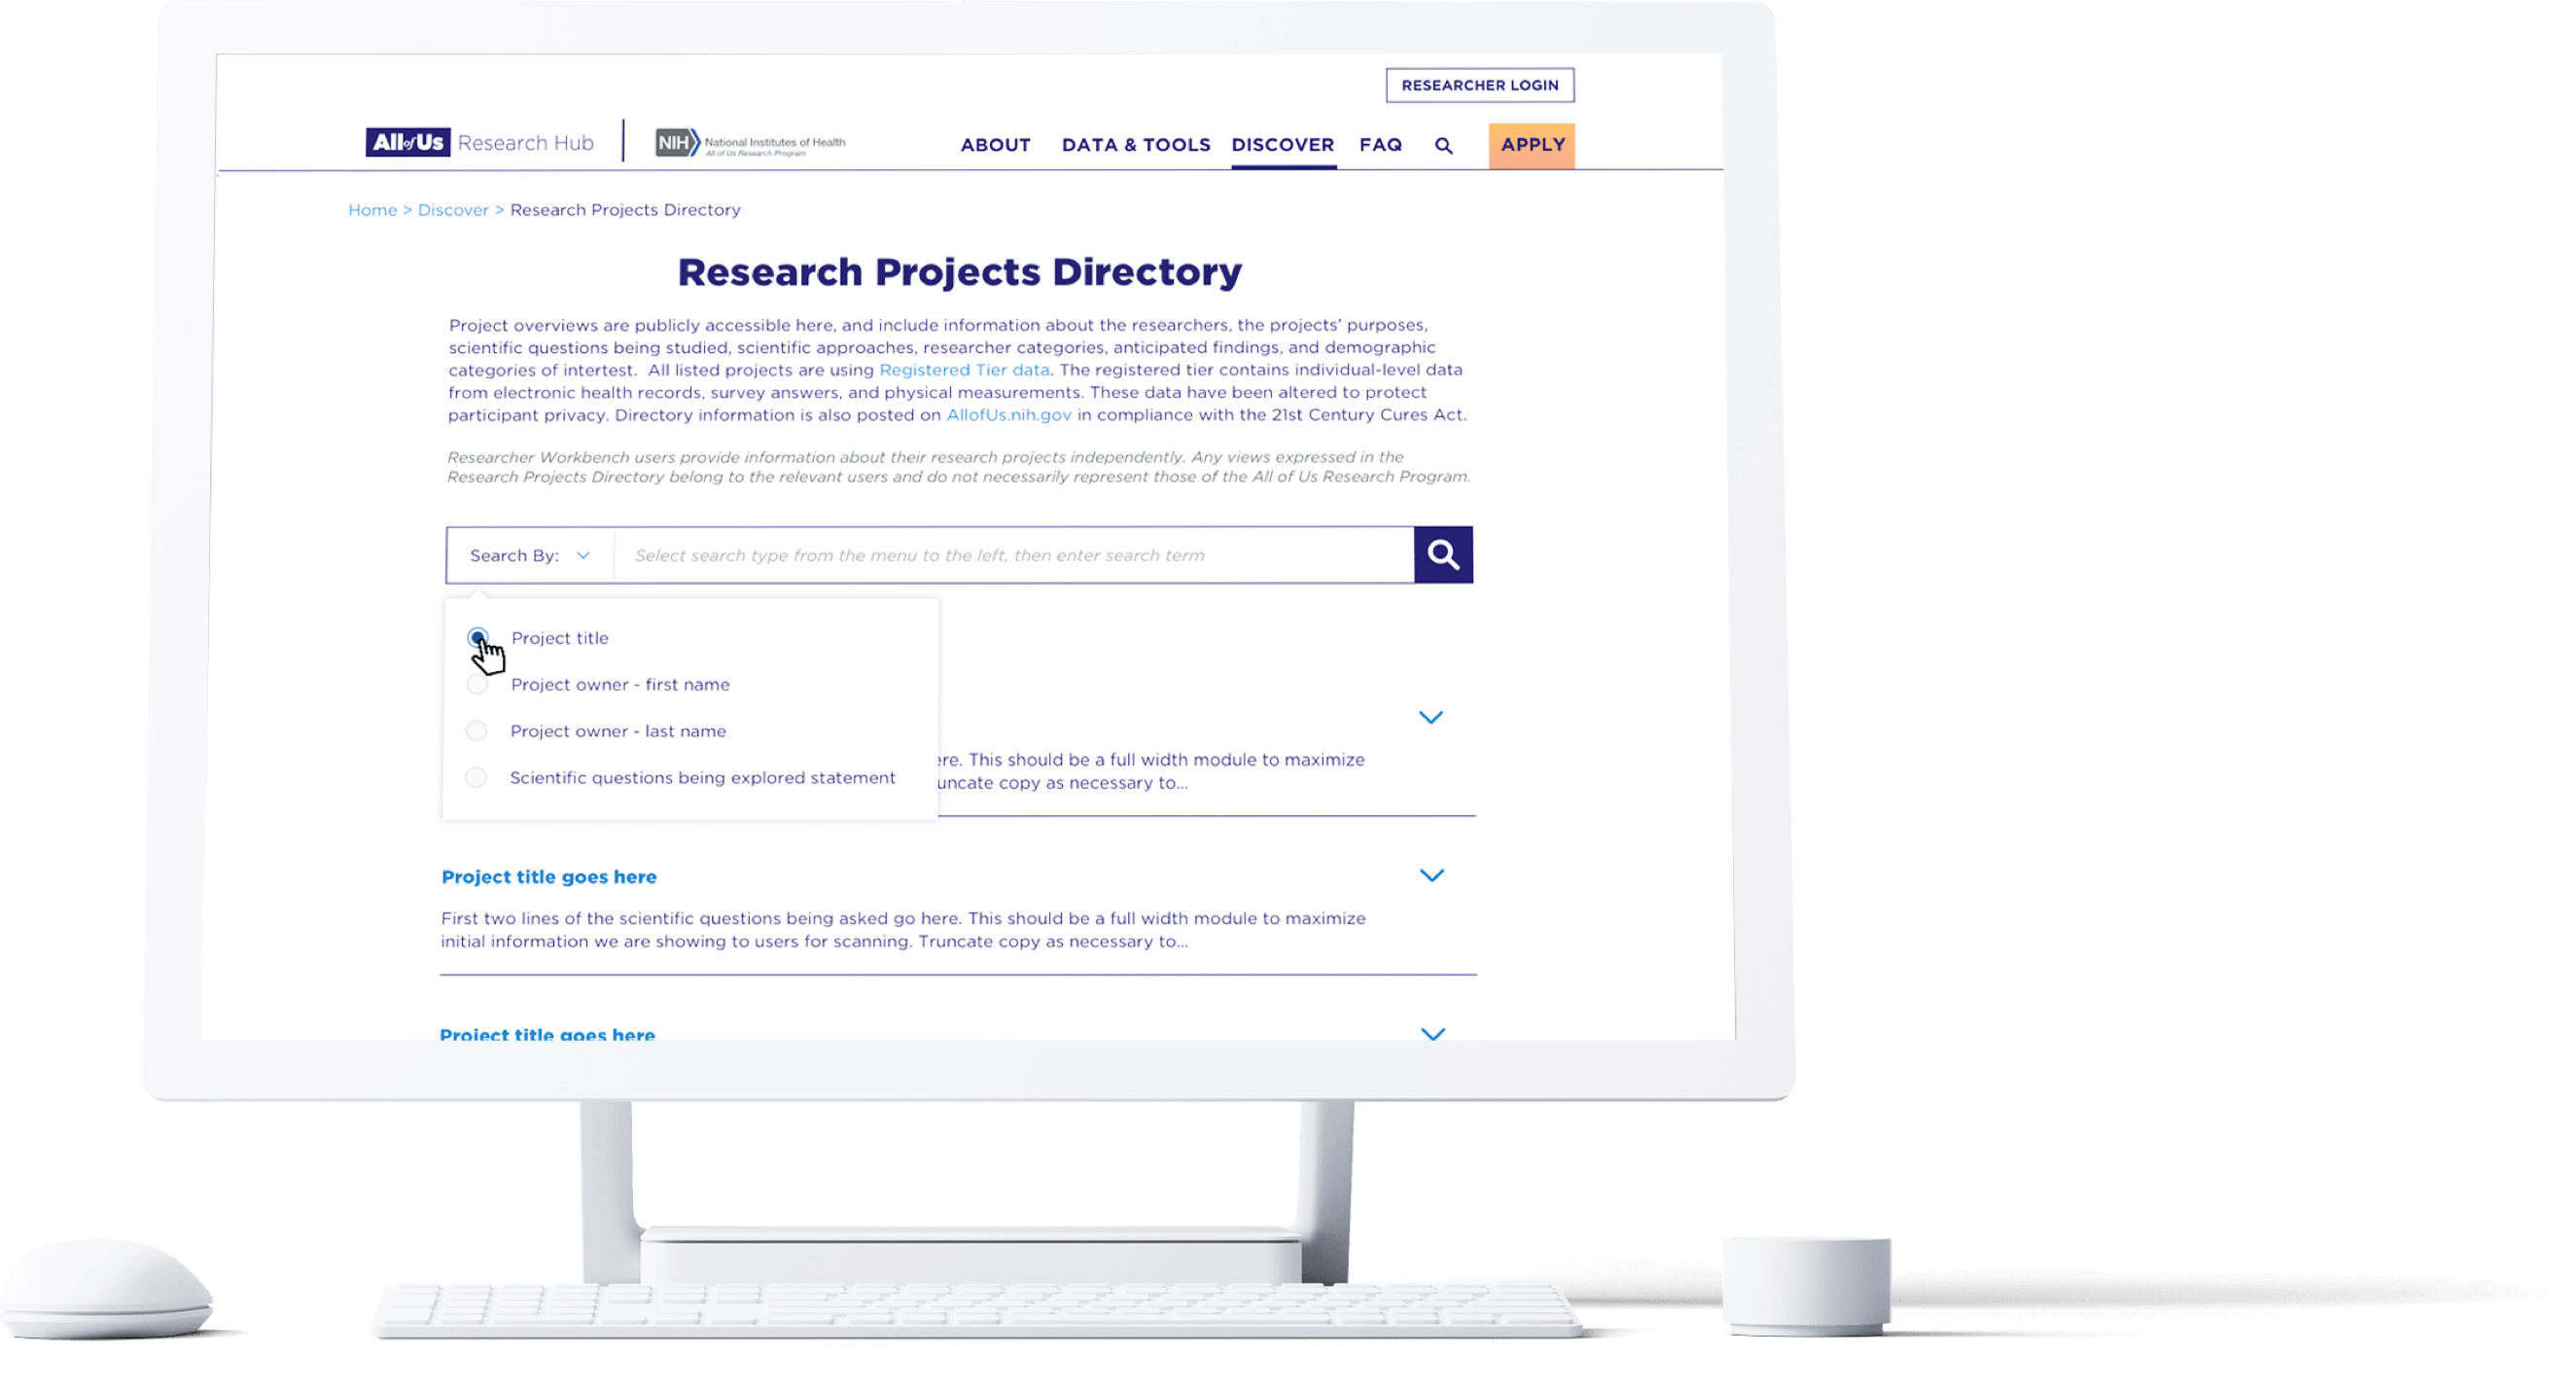 Projects Directory